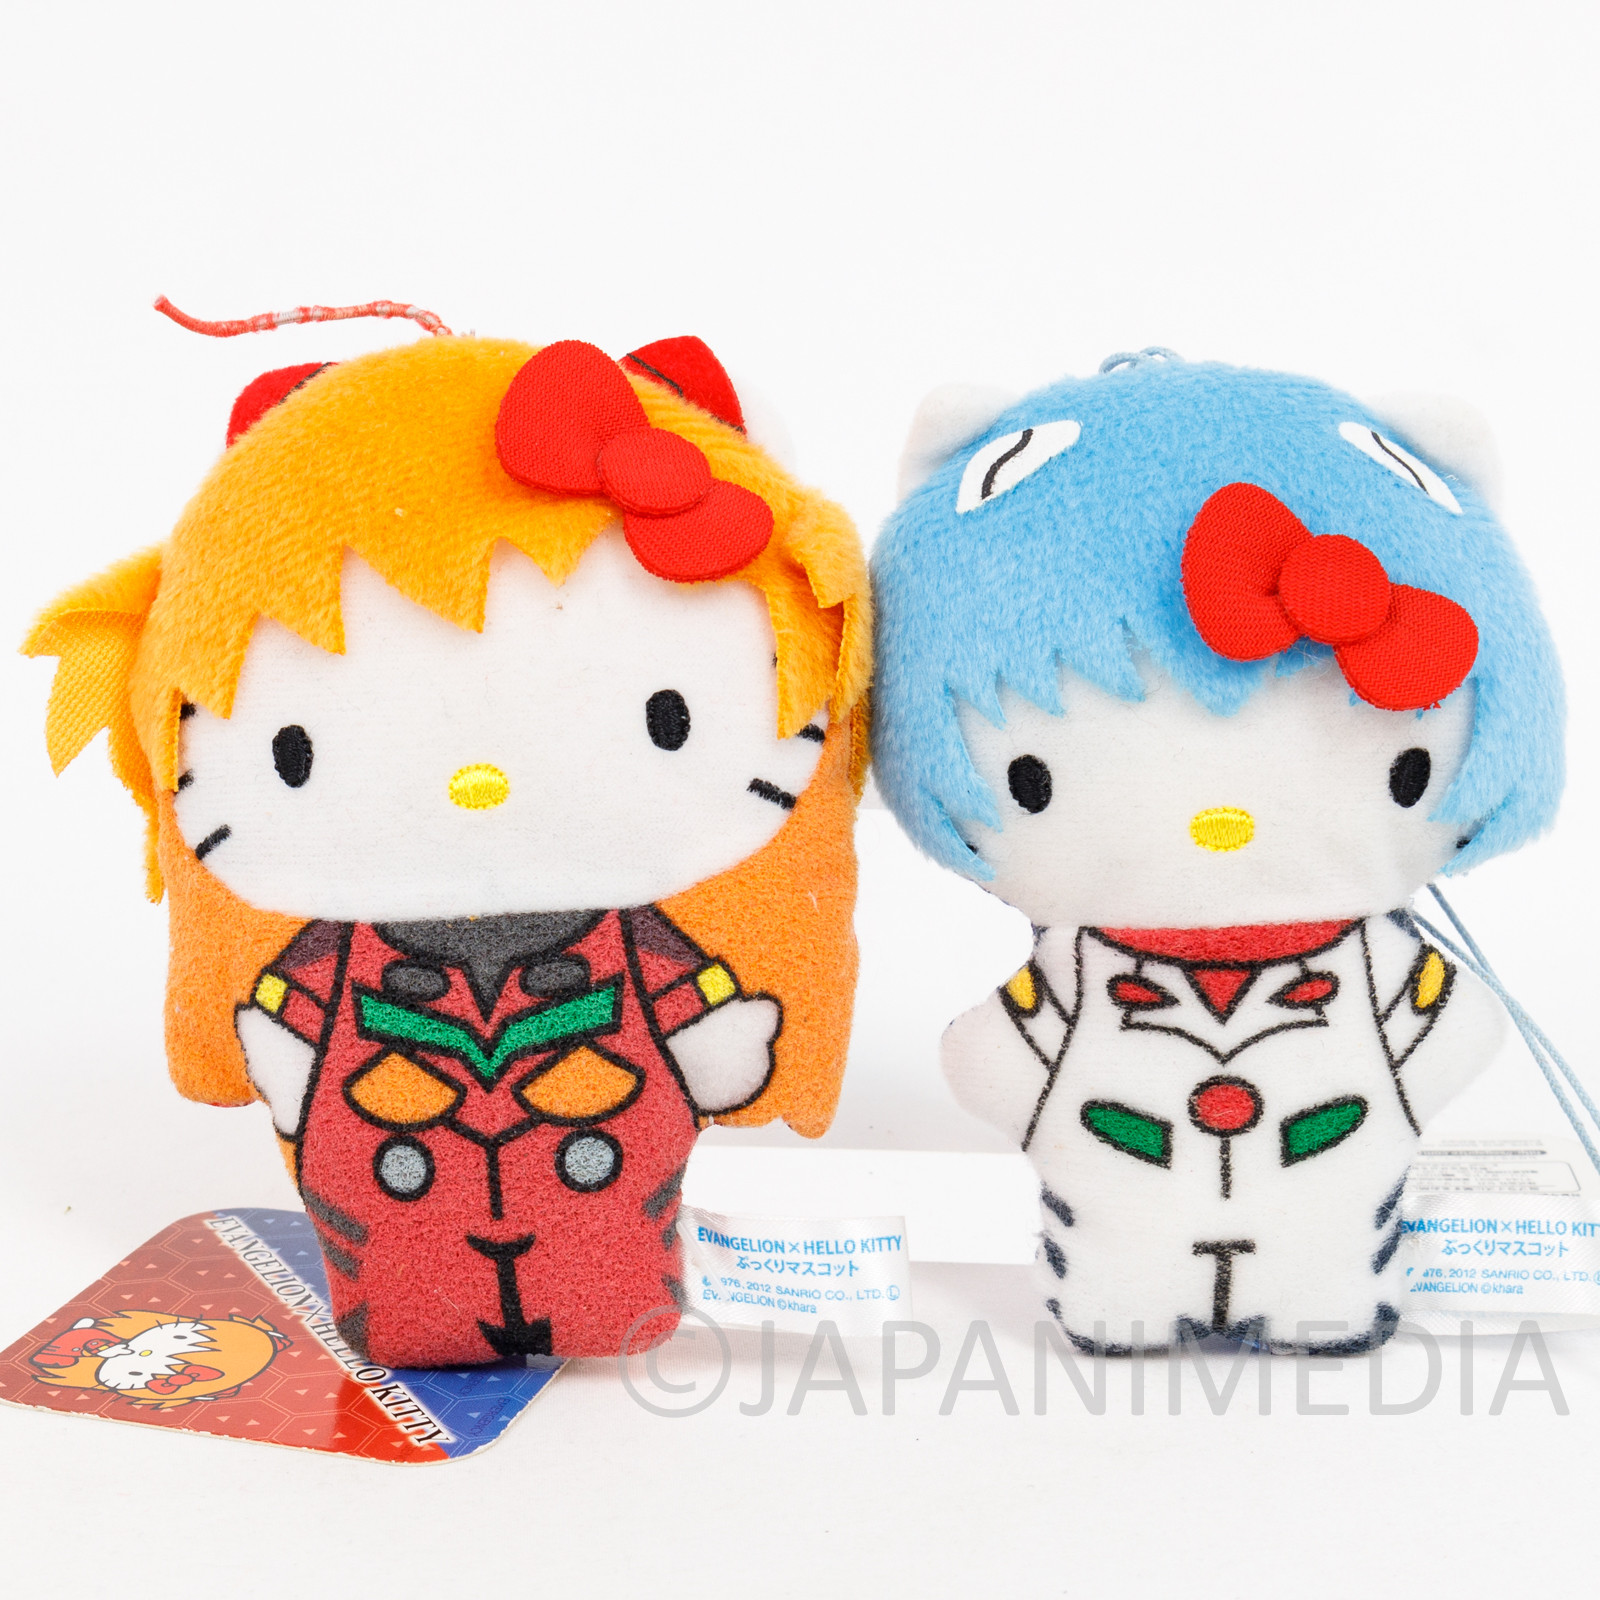 Evangelion x Hello Kitty Small Plush Doll Set Rei Ayanami + Asuka Langley